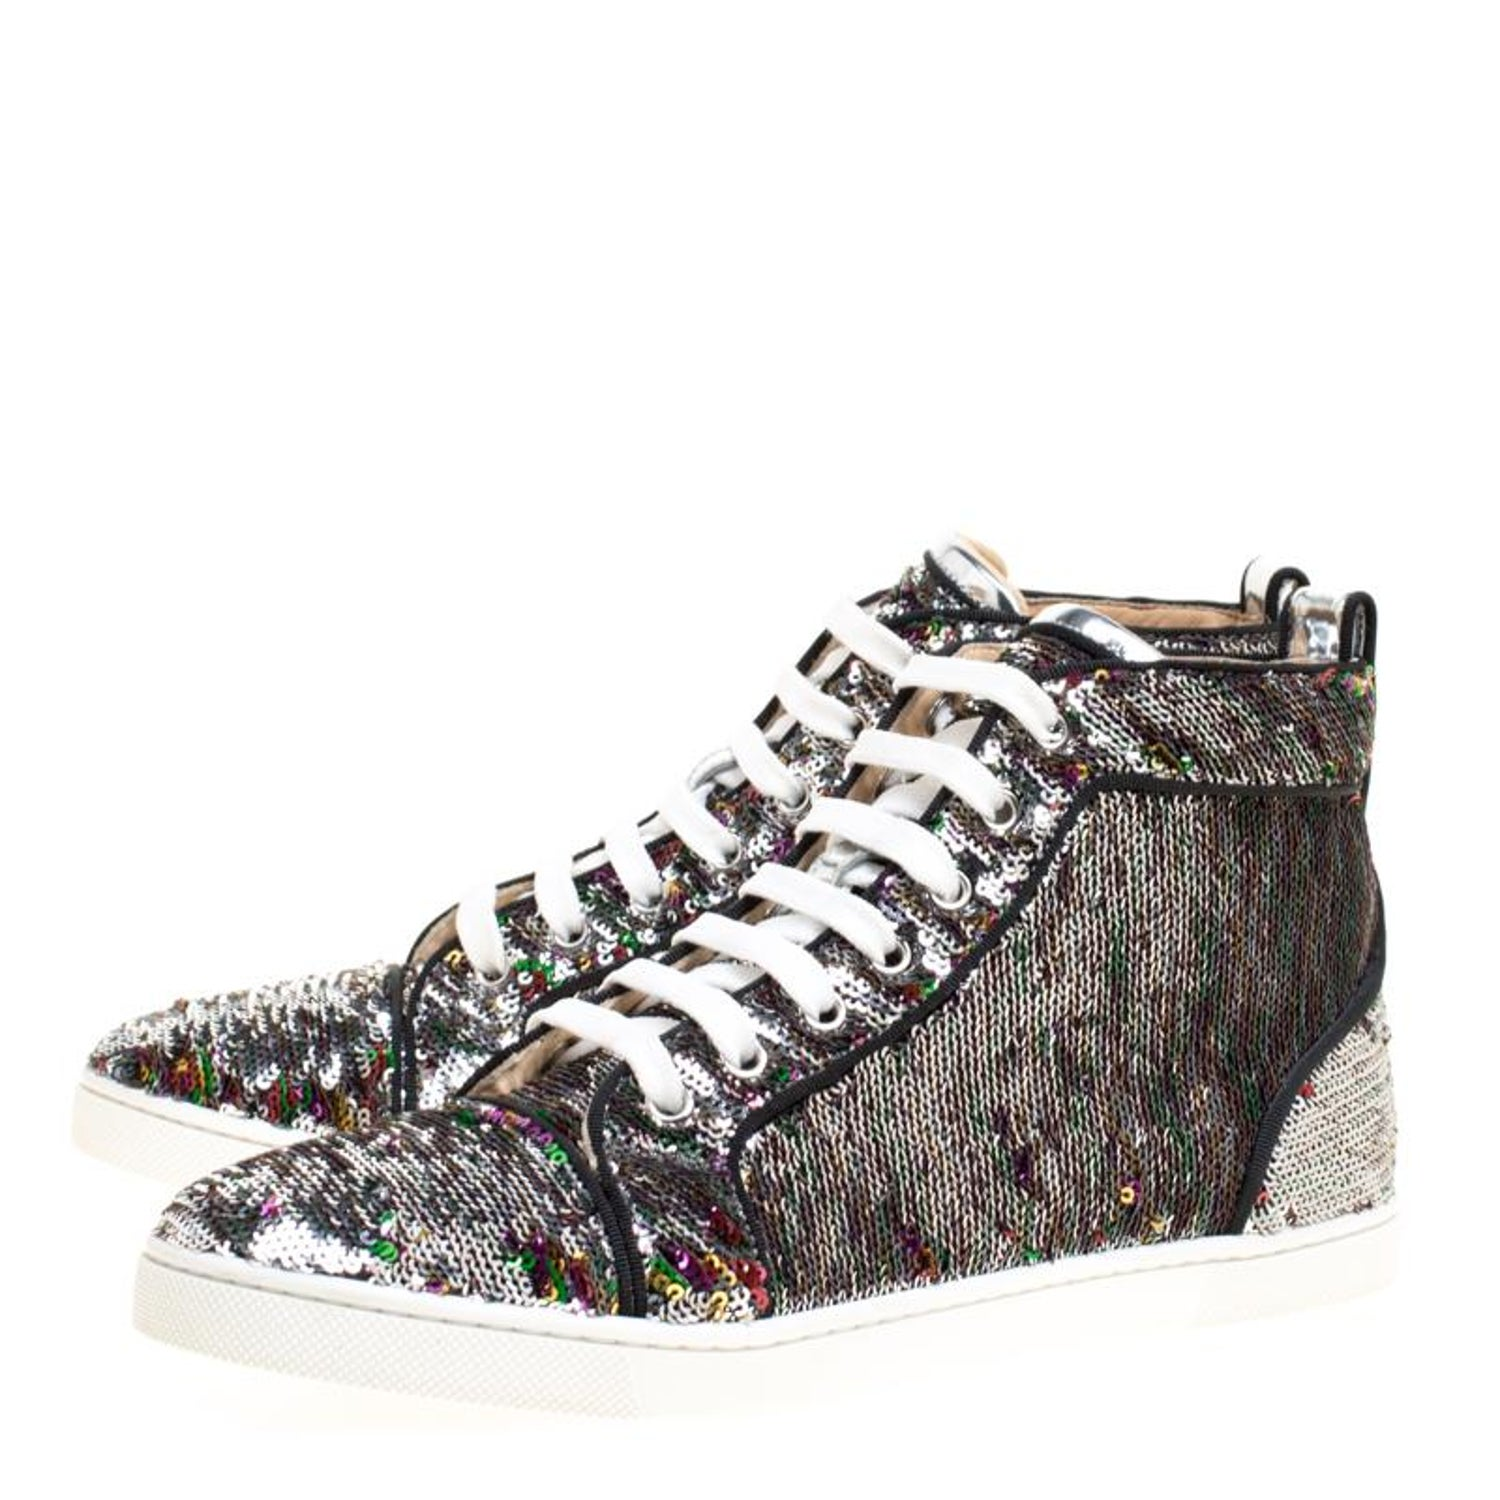 7a8d01798137 Christian Louboutin Two Tone Sequins Bip Bip Orlato High Top Sneakers Size  38 at 1stdibs